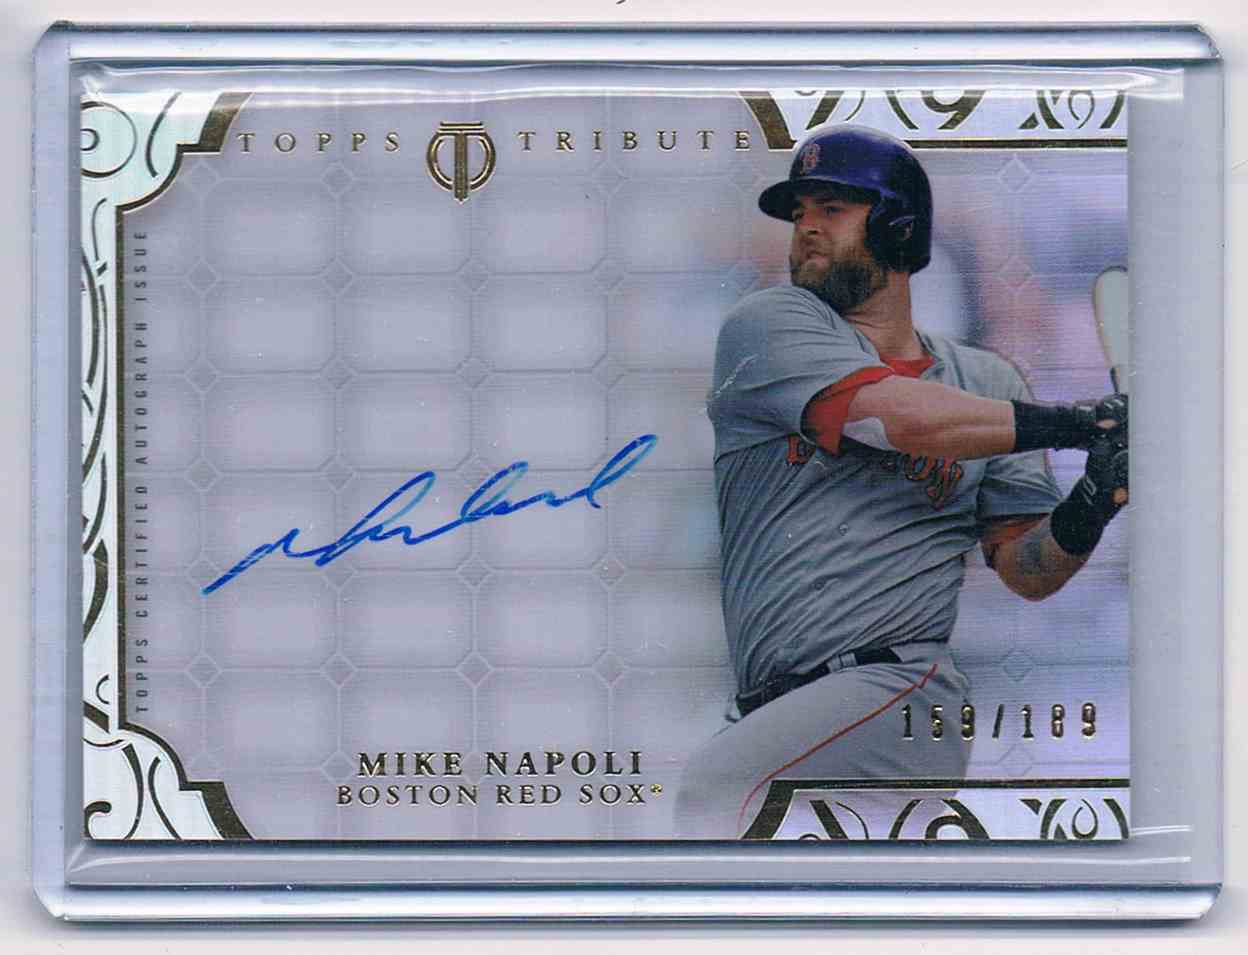 2015 Topps Tribute Mike Napoli #TA-MN card front image